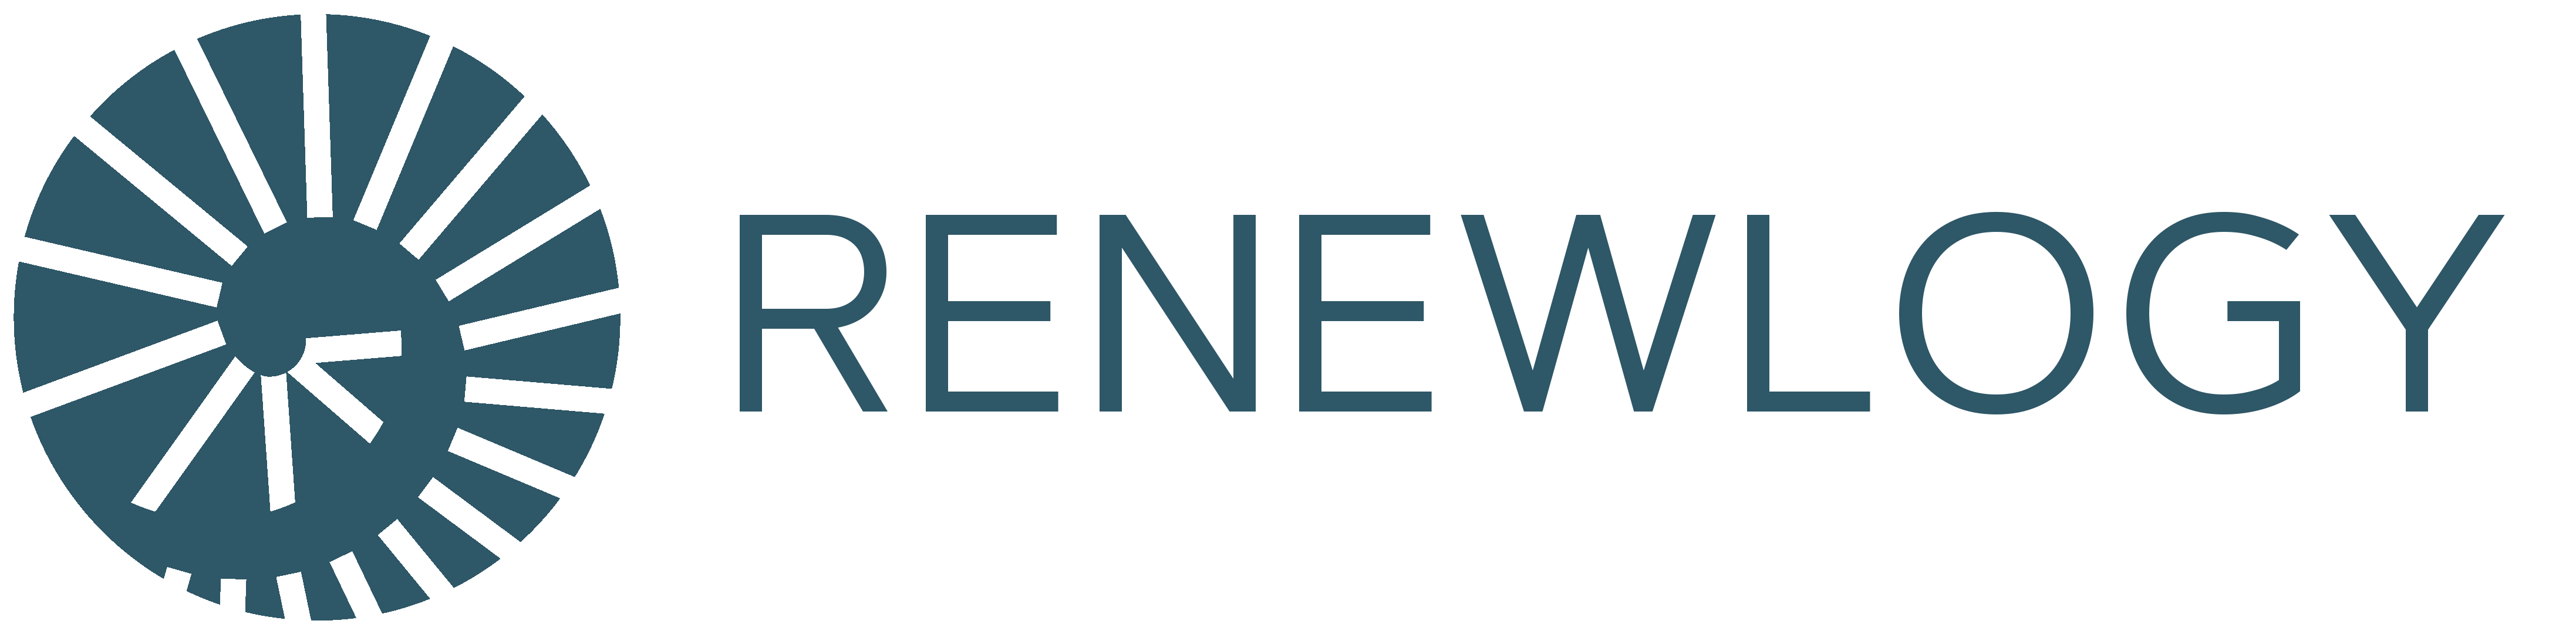 Renewology logo